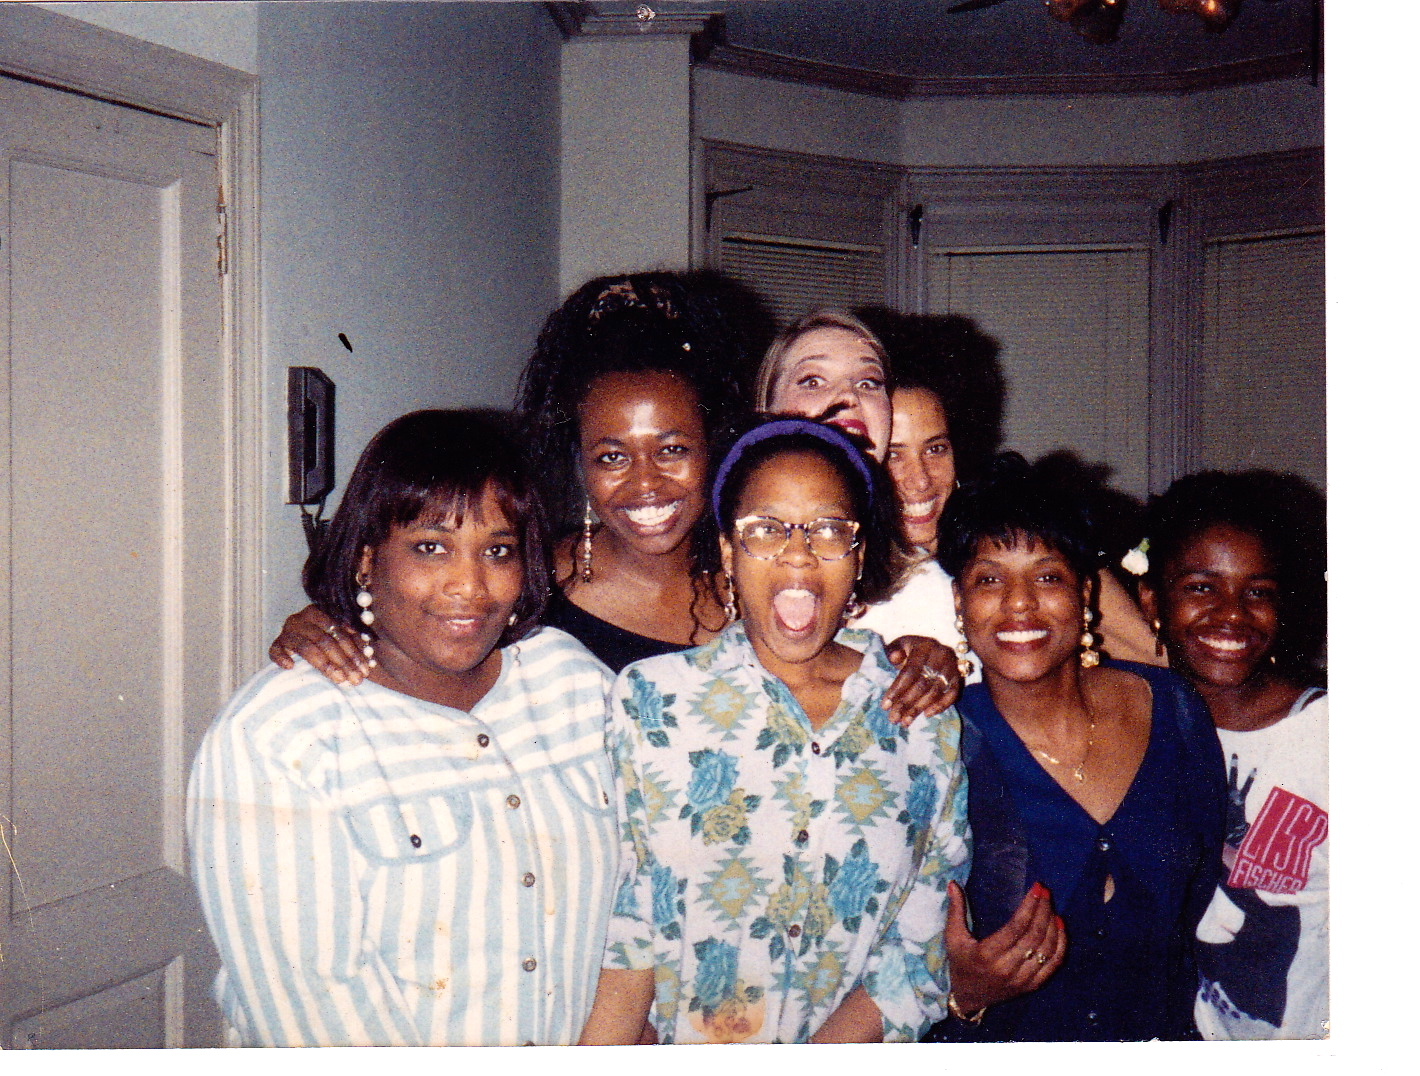 Photo taken circa 1990: (Sister) Stephanie, Leslie in crazy Navajo sweater (?), (Leslie's sister) Lisa, Nathalie, Marjorie and Donna... on the end, who died of cancer in January. Miss her. Turning 50 has taken on a whole new meaning for me...  My apartment on Girard Avenue near the Art Museum.